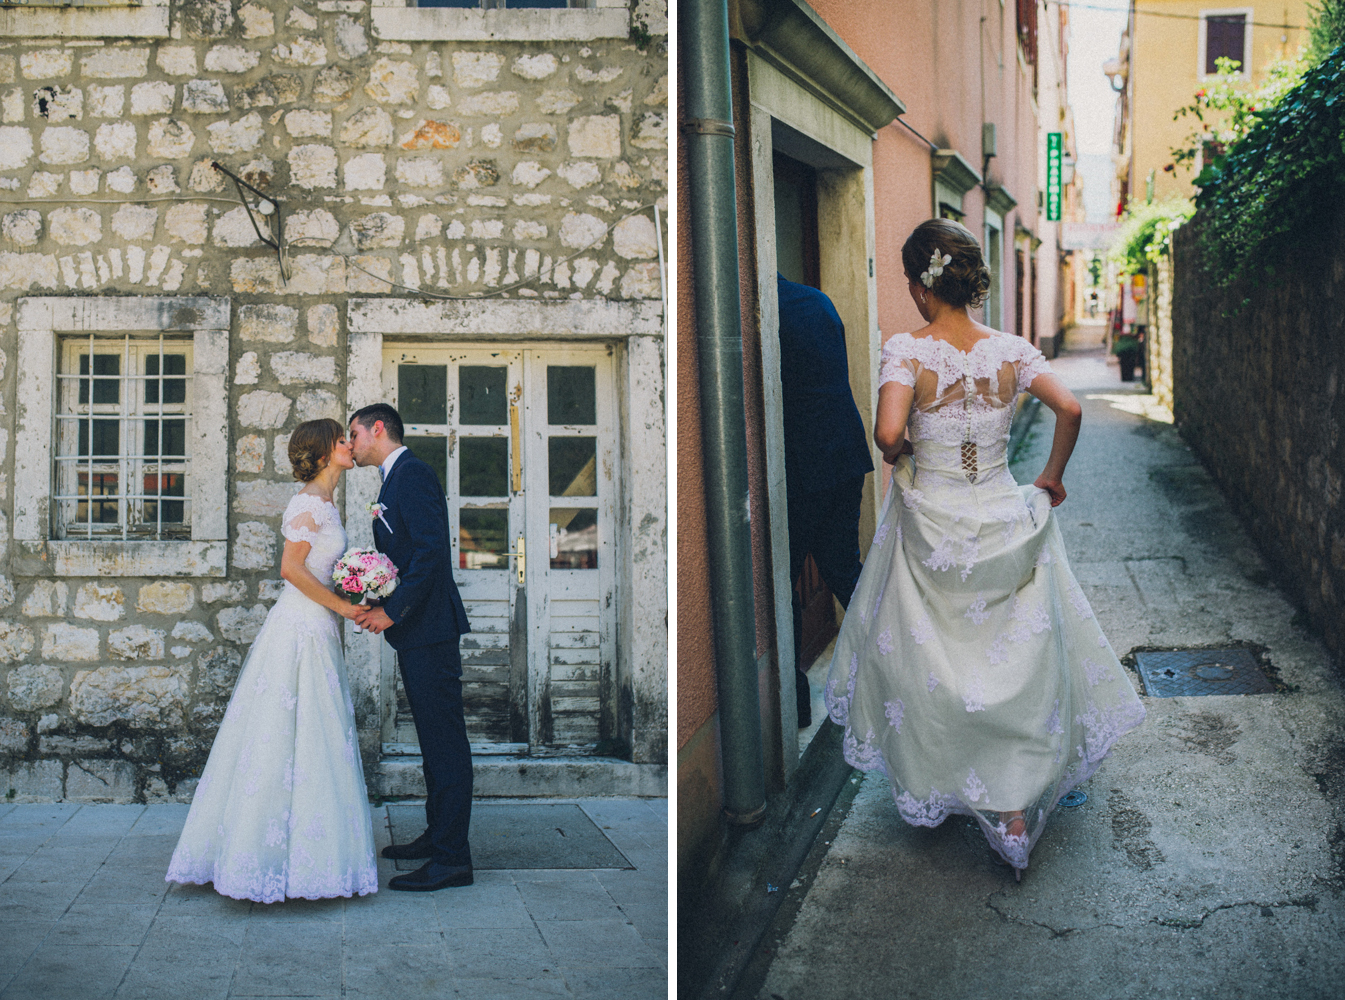 2 wedding in dubrovnik hvar istria wedding photo photography croatia photographer venues destination wedding elopement (5 of 54).jpg